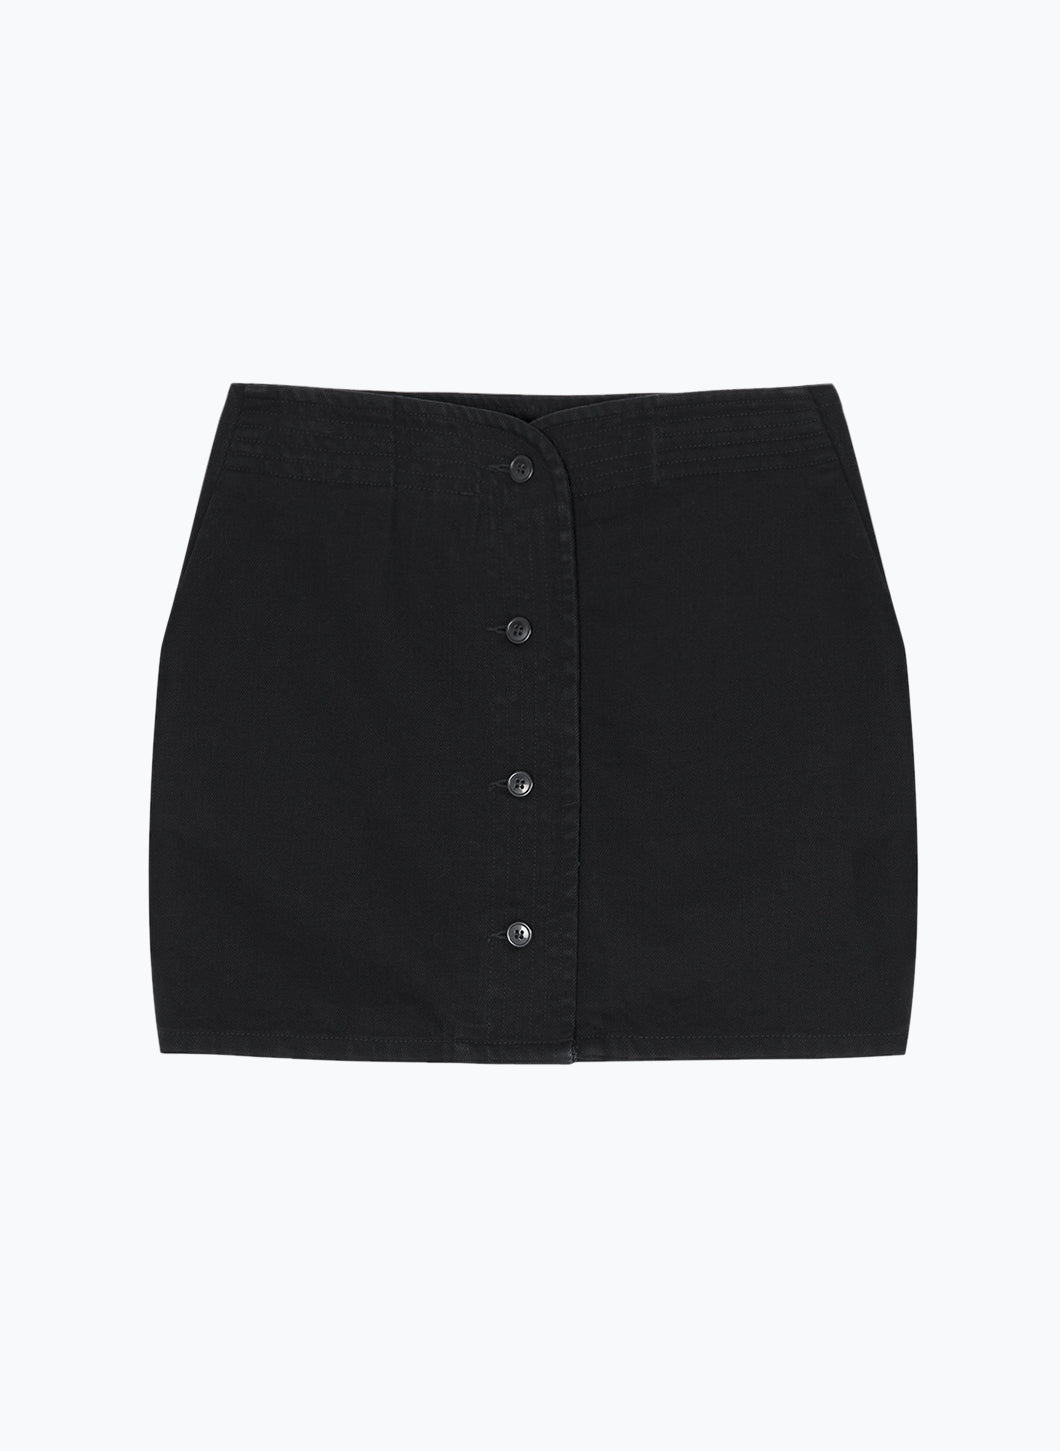 Judo Miniskirt in Black Denim